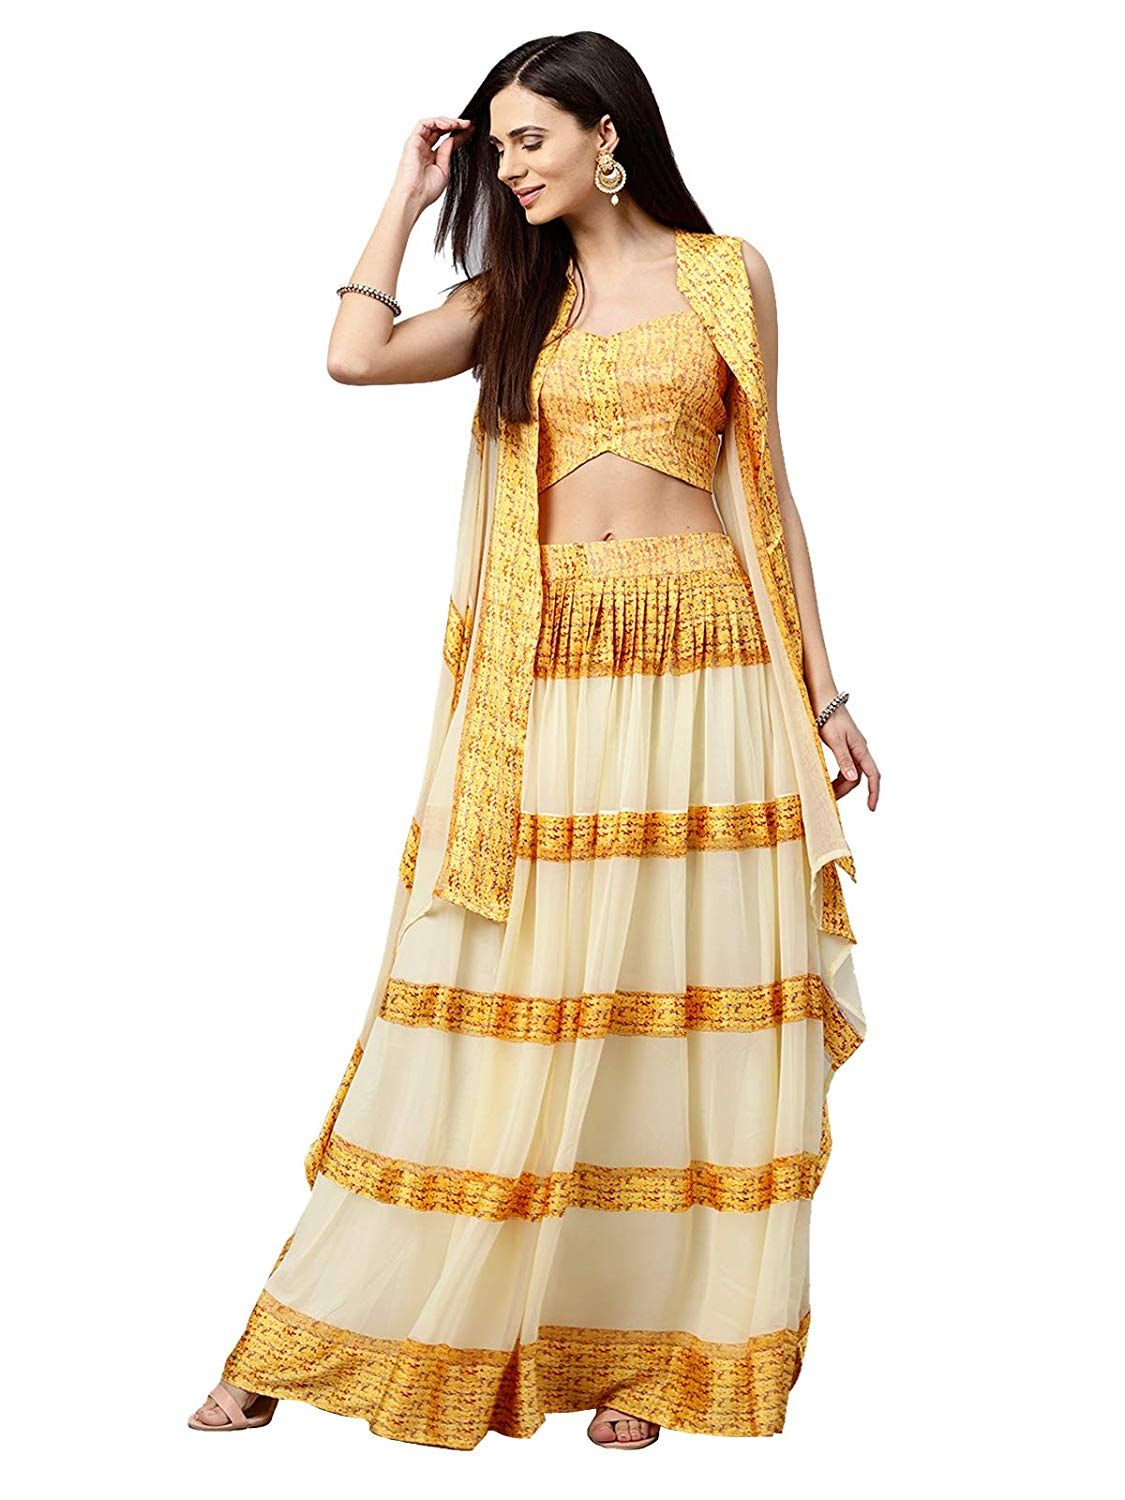 6f98c6766d8 Inddus Beige Chiffon Blend Lehenga Choli With Jacket (Semi-Stitched)   Amazon.in  Clothing   Accessories